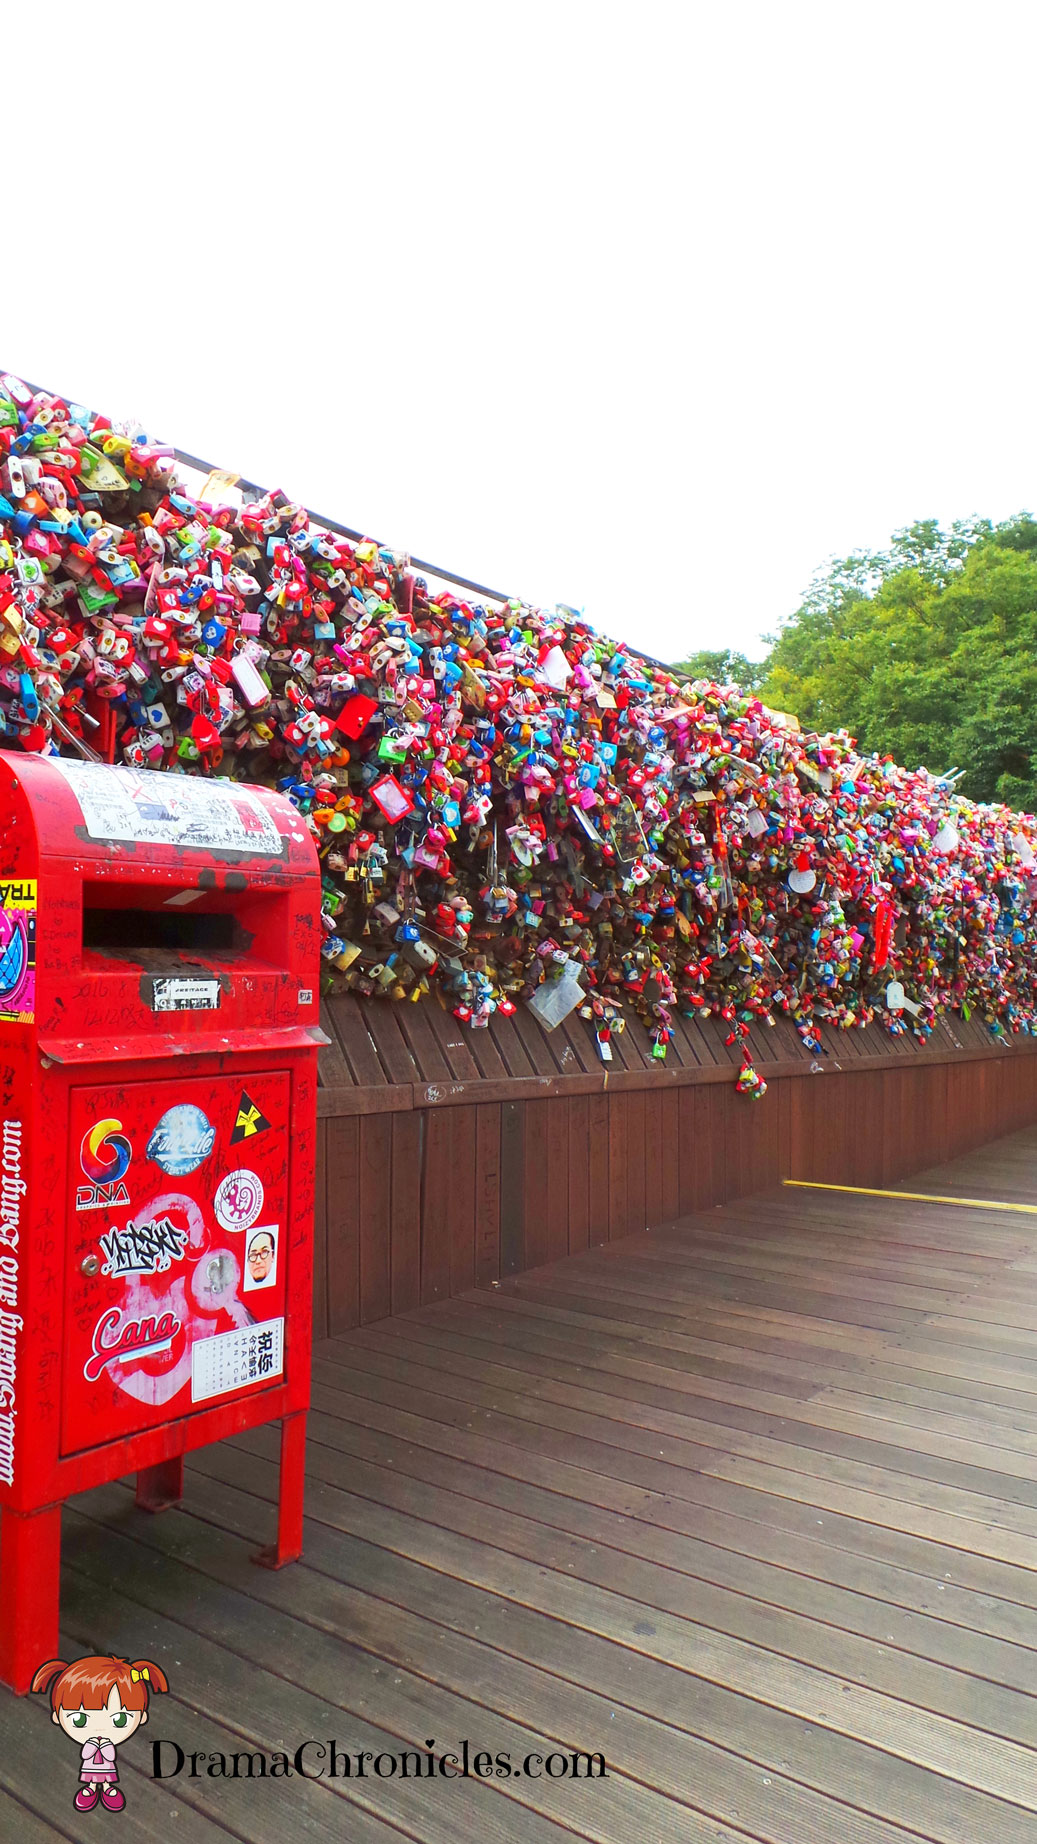 namsan-tower-29-drama-chronicles